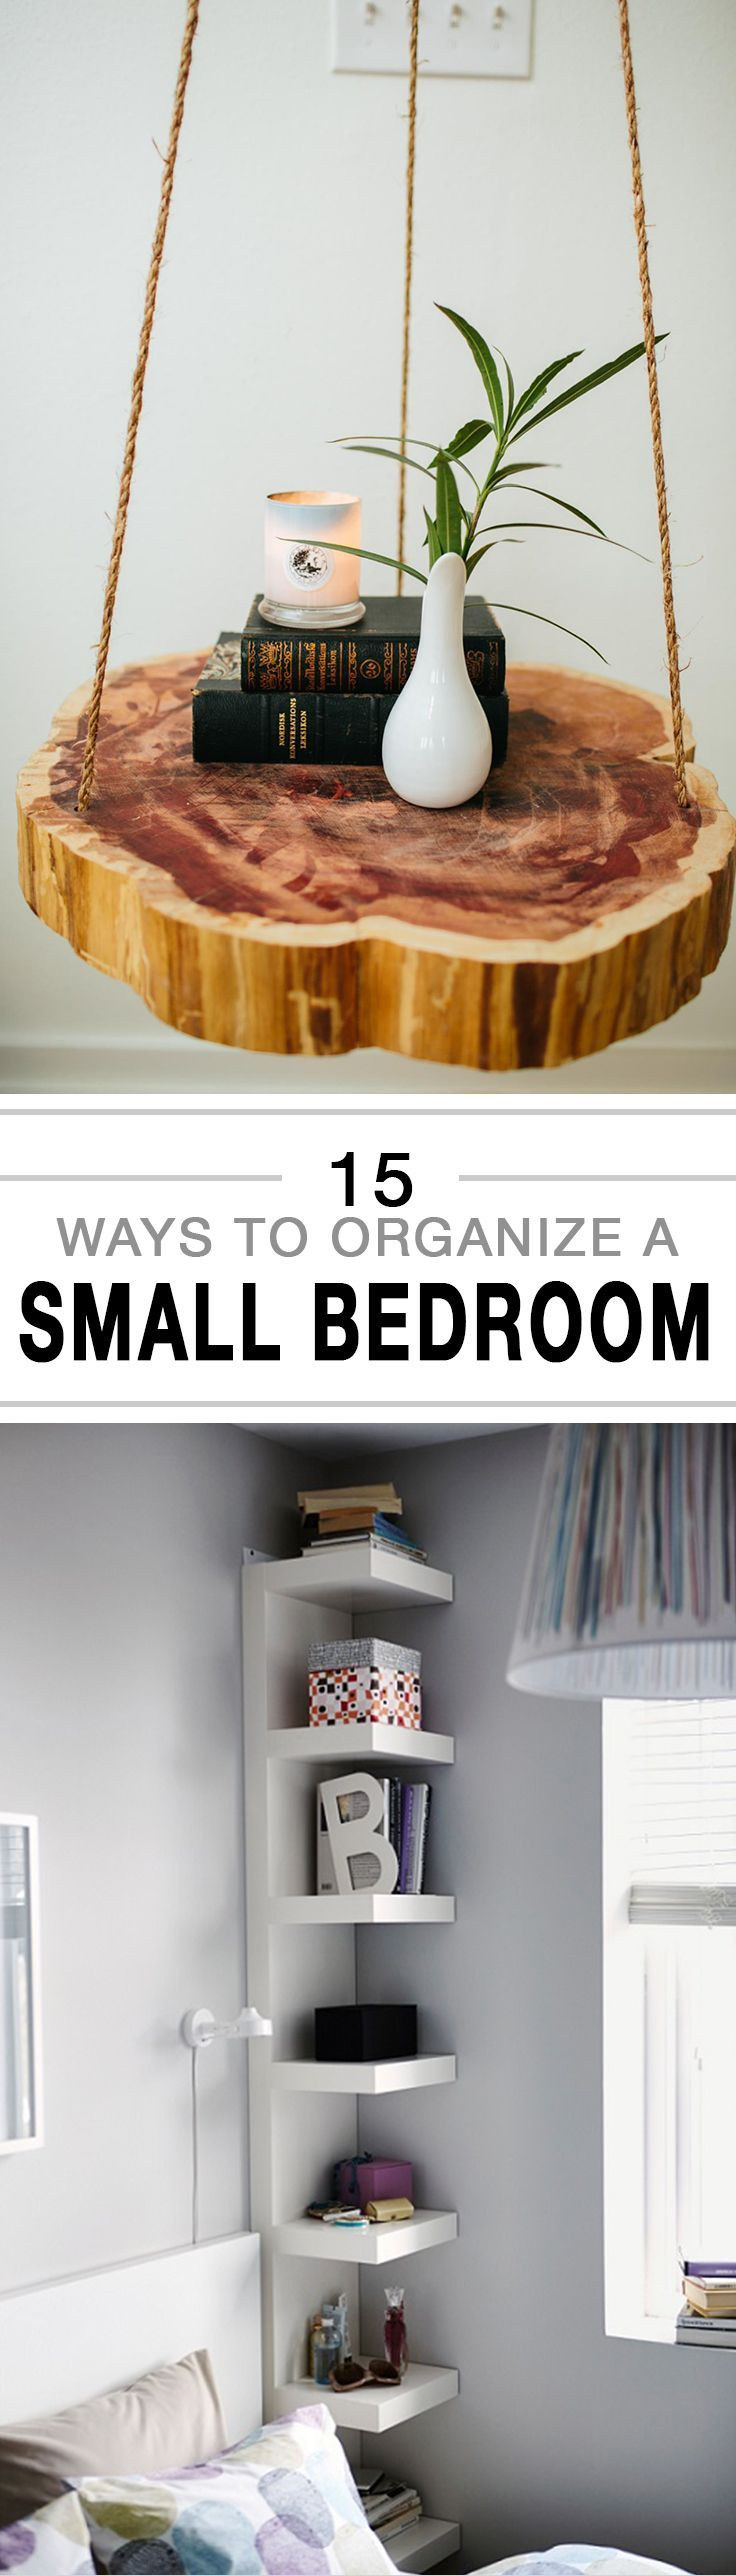 15 Ways to Organize a Small Bedroom   Organizing, Bedrooms and ...